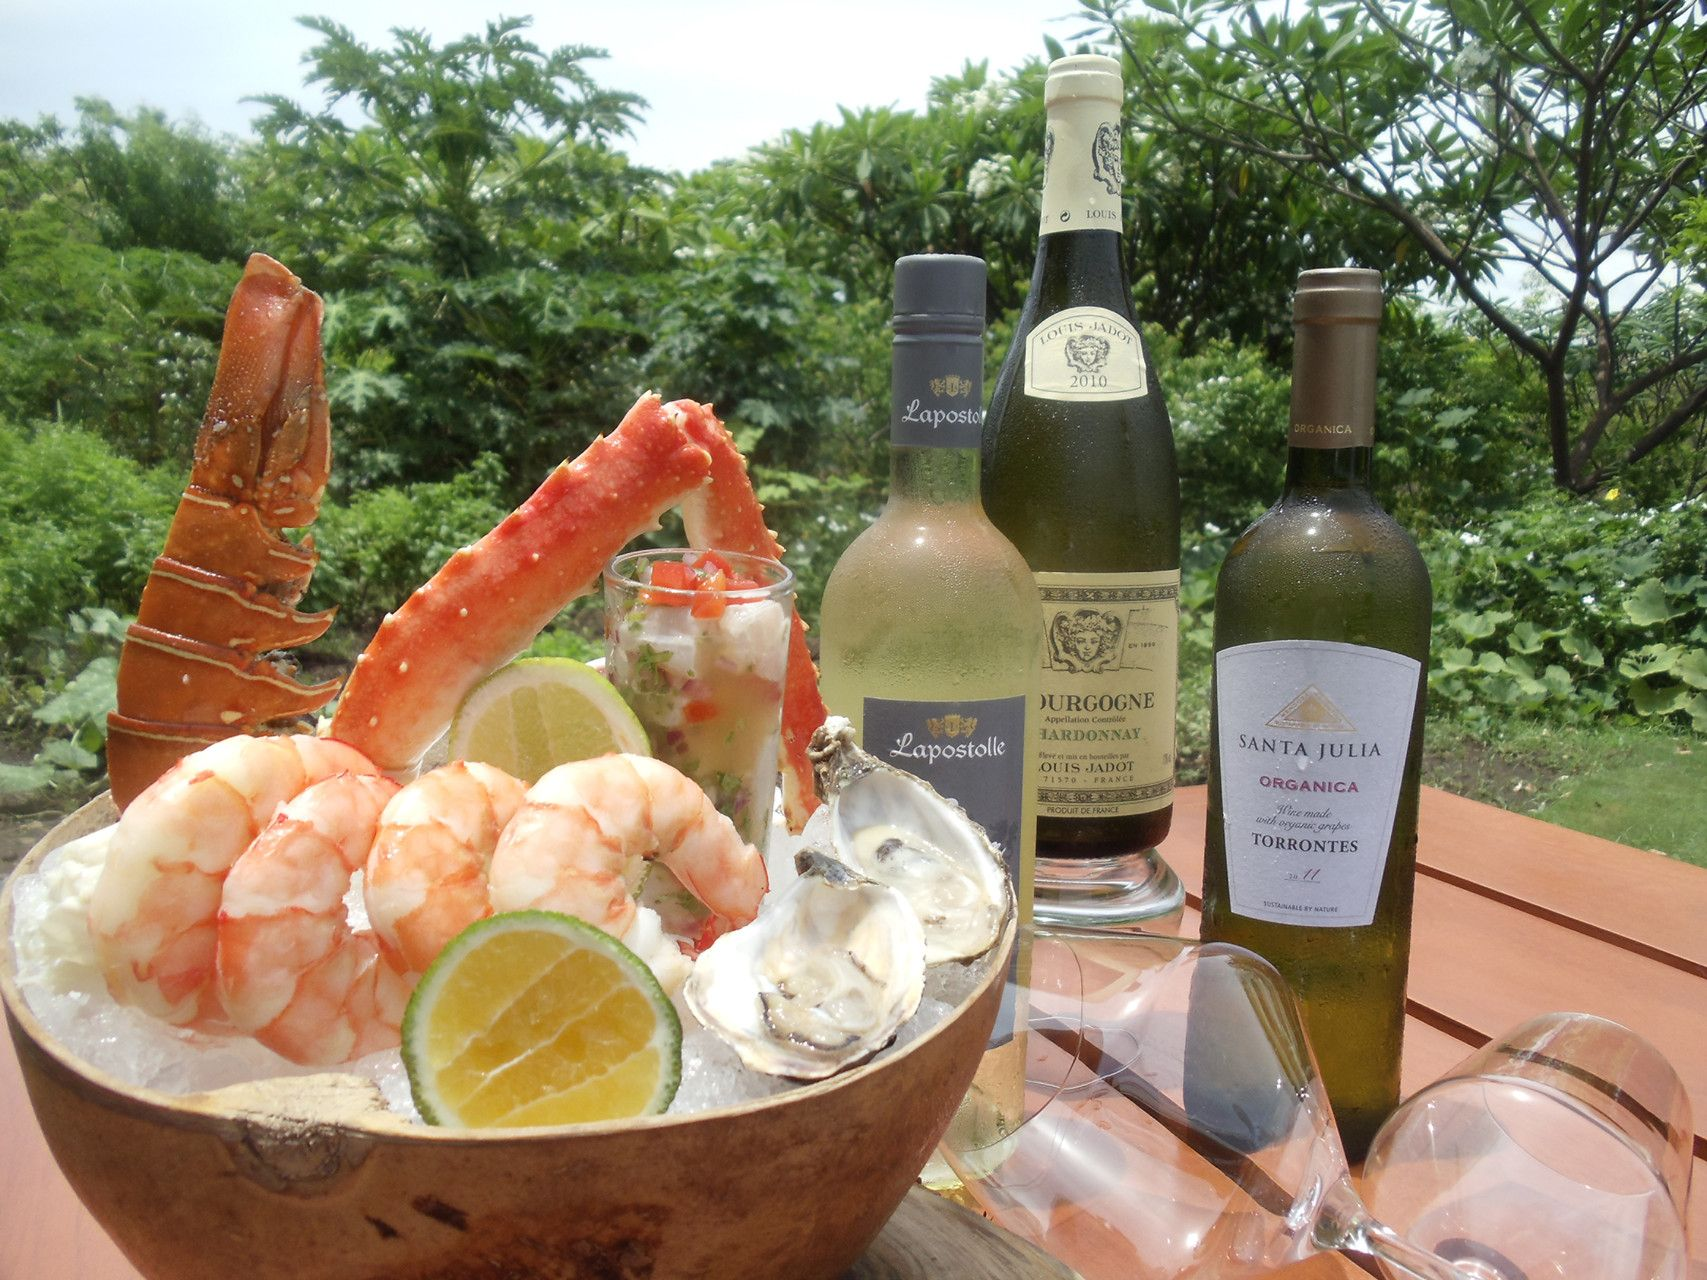 New organic and biodynamic white wines at Caracol restaurant at Four Seasons Costa Rica paired with seafood platter including local oysters, ceviche, jumbo prawns, lobster tail and crab legs.